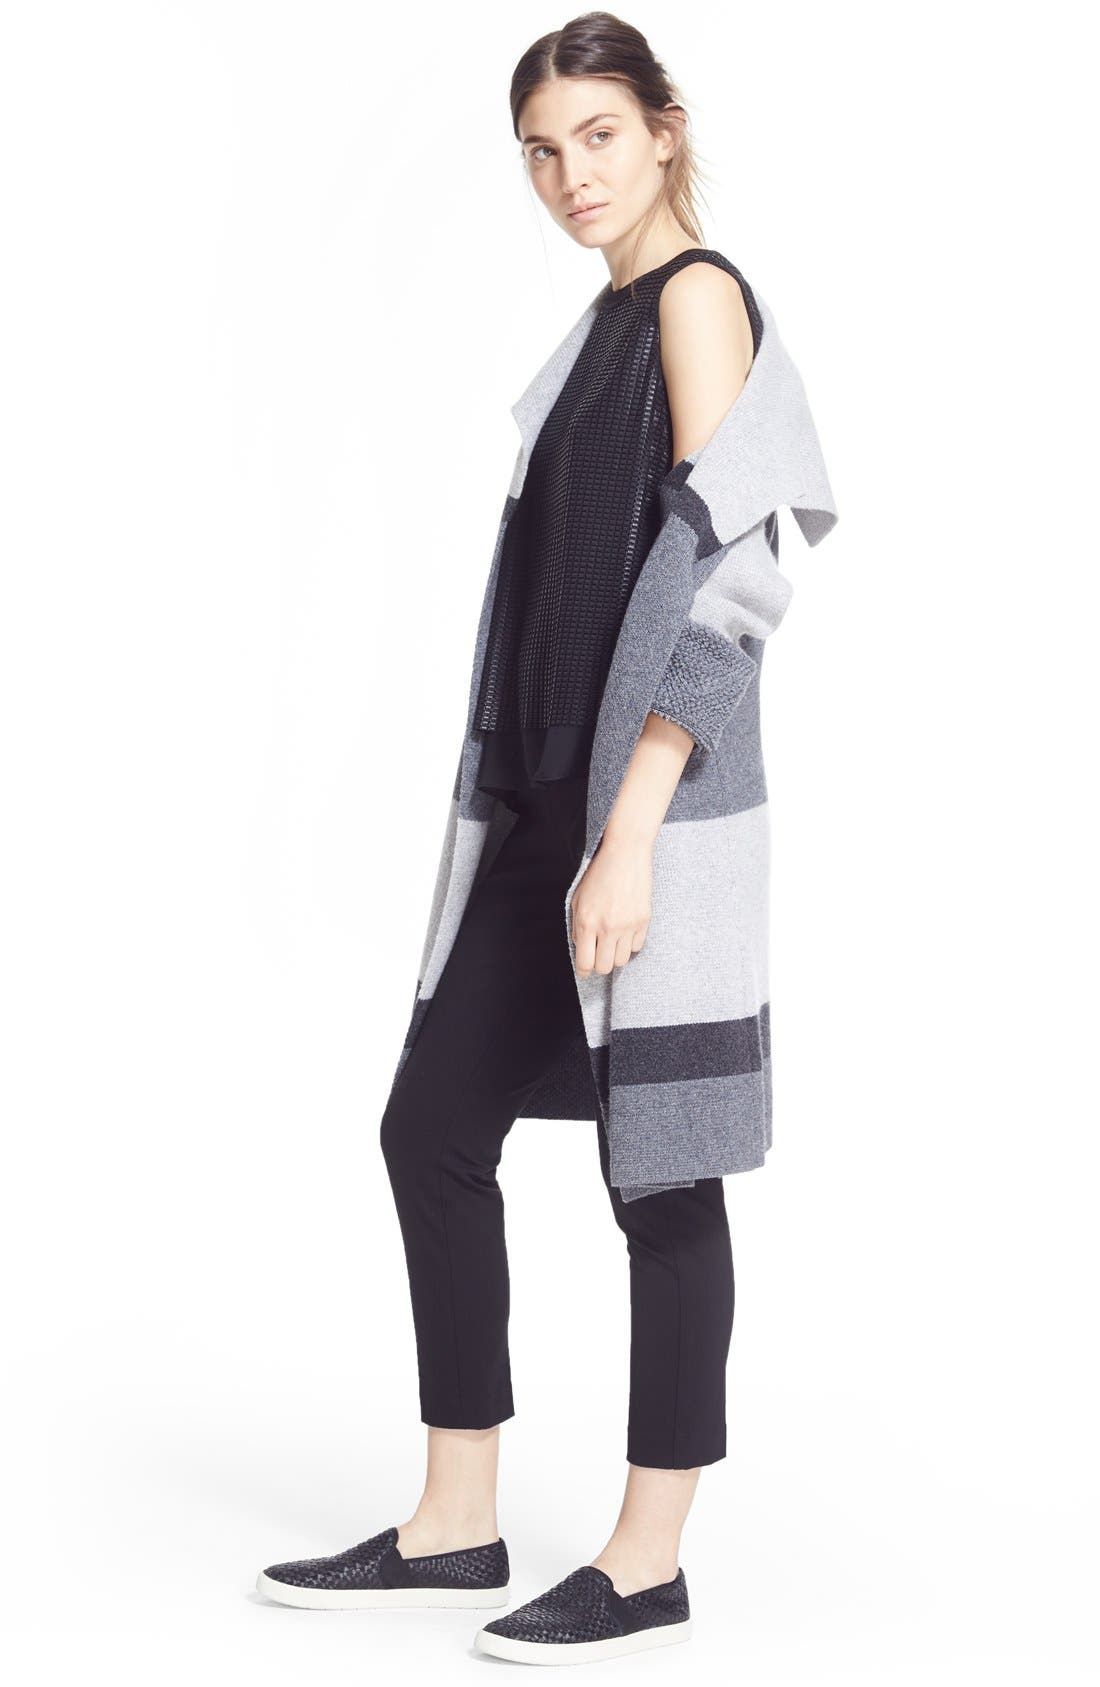 Colorblock Wool & Cashmere Knit Car Coat,                             Alternate thumbnail 7, color,                             Heather Steal/ Stone/ Carbon